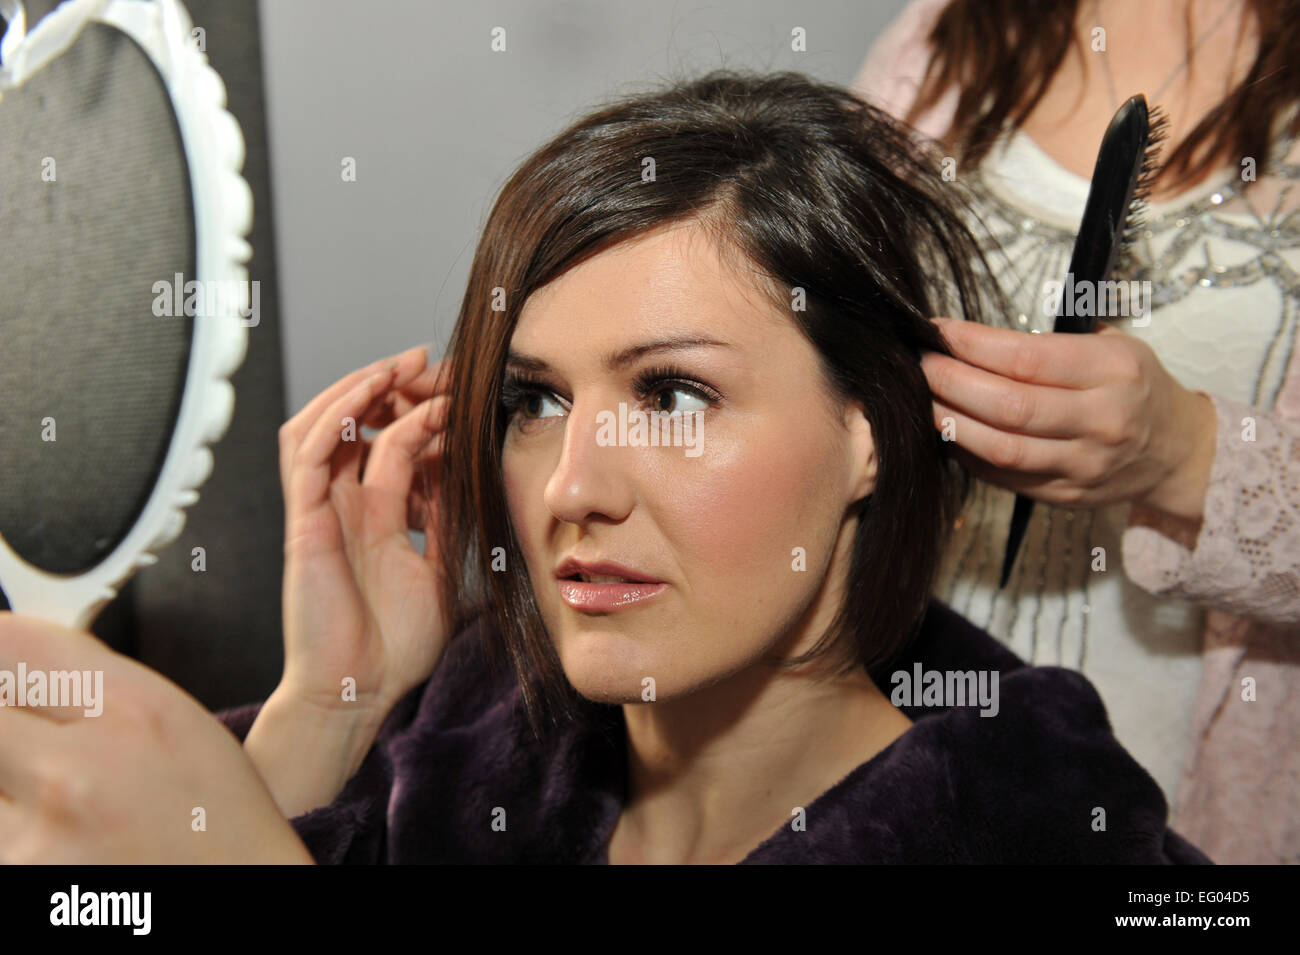 Hair dresser prepares a bride for her wedding. - Stock Image